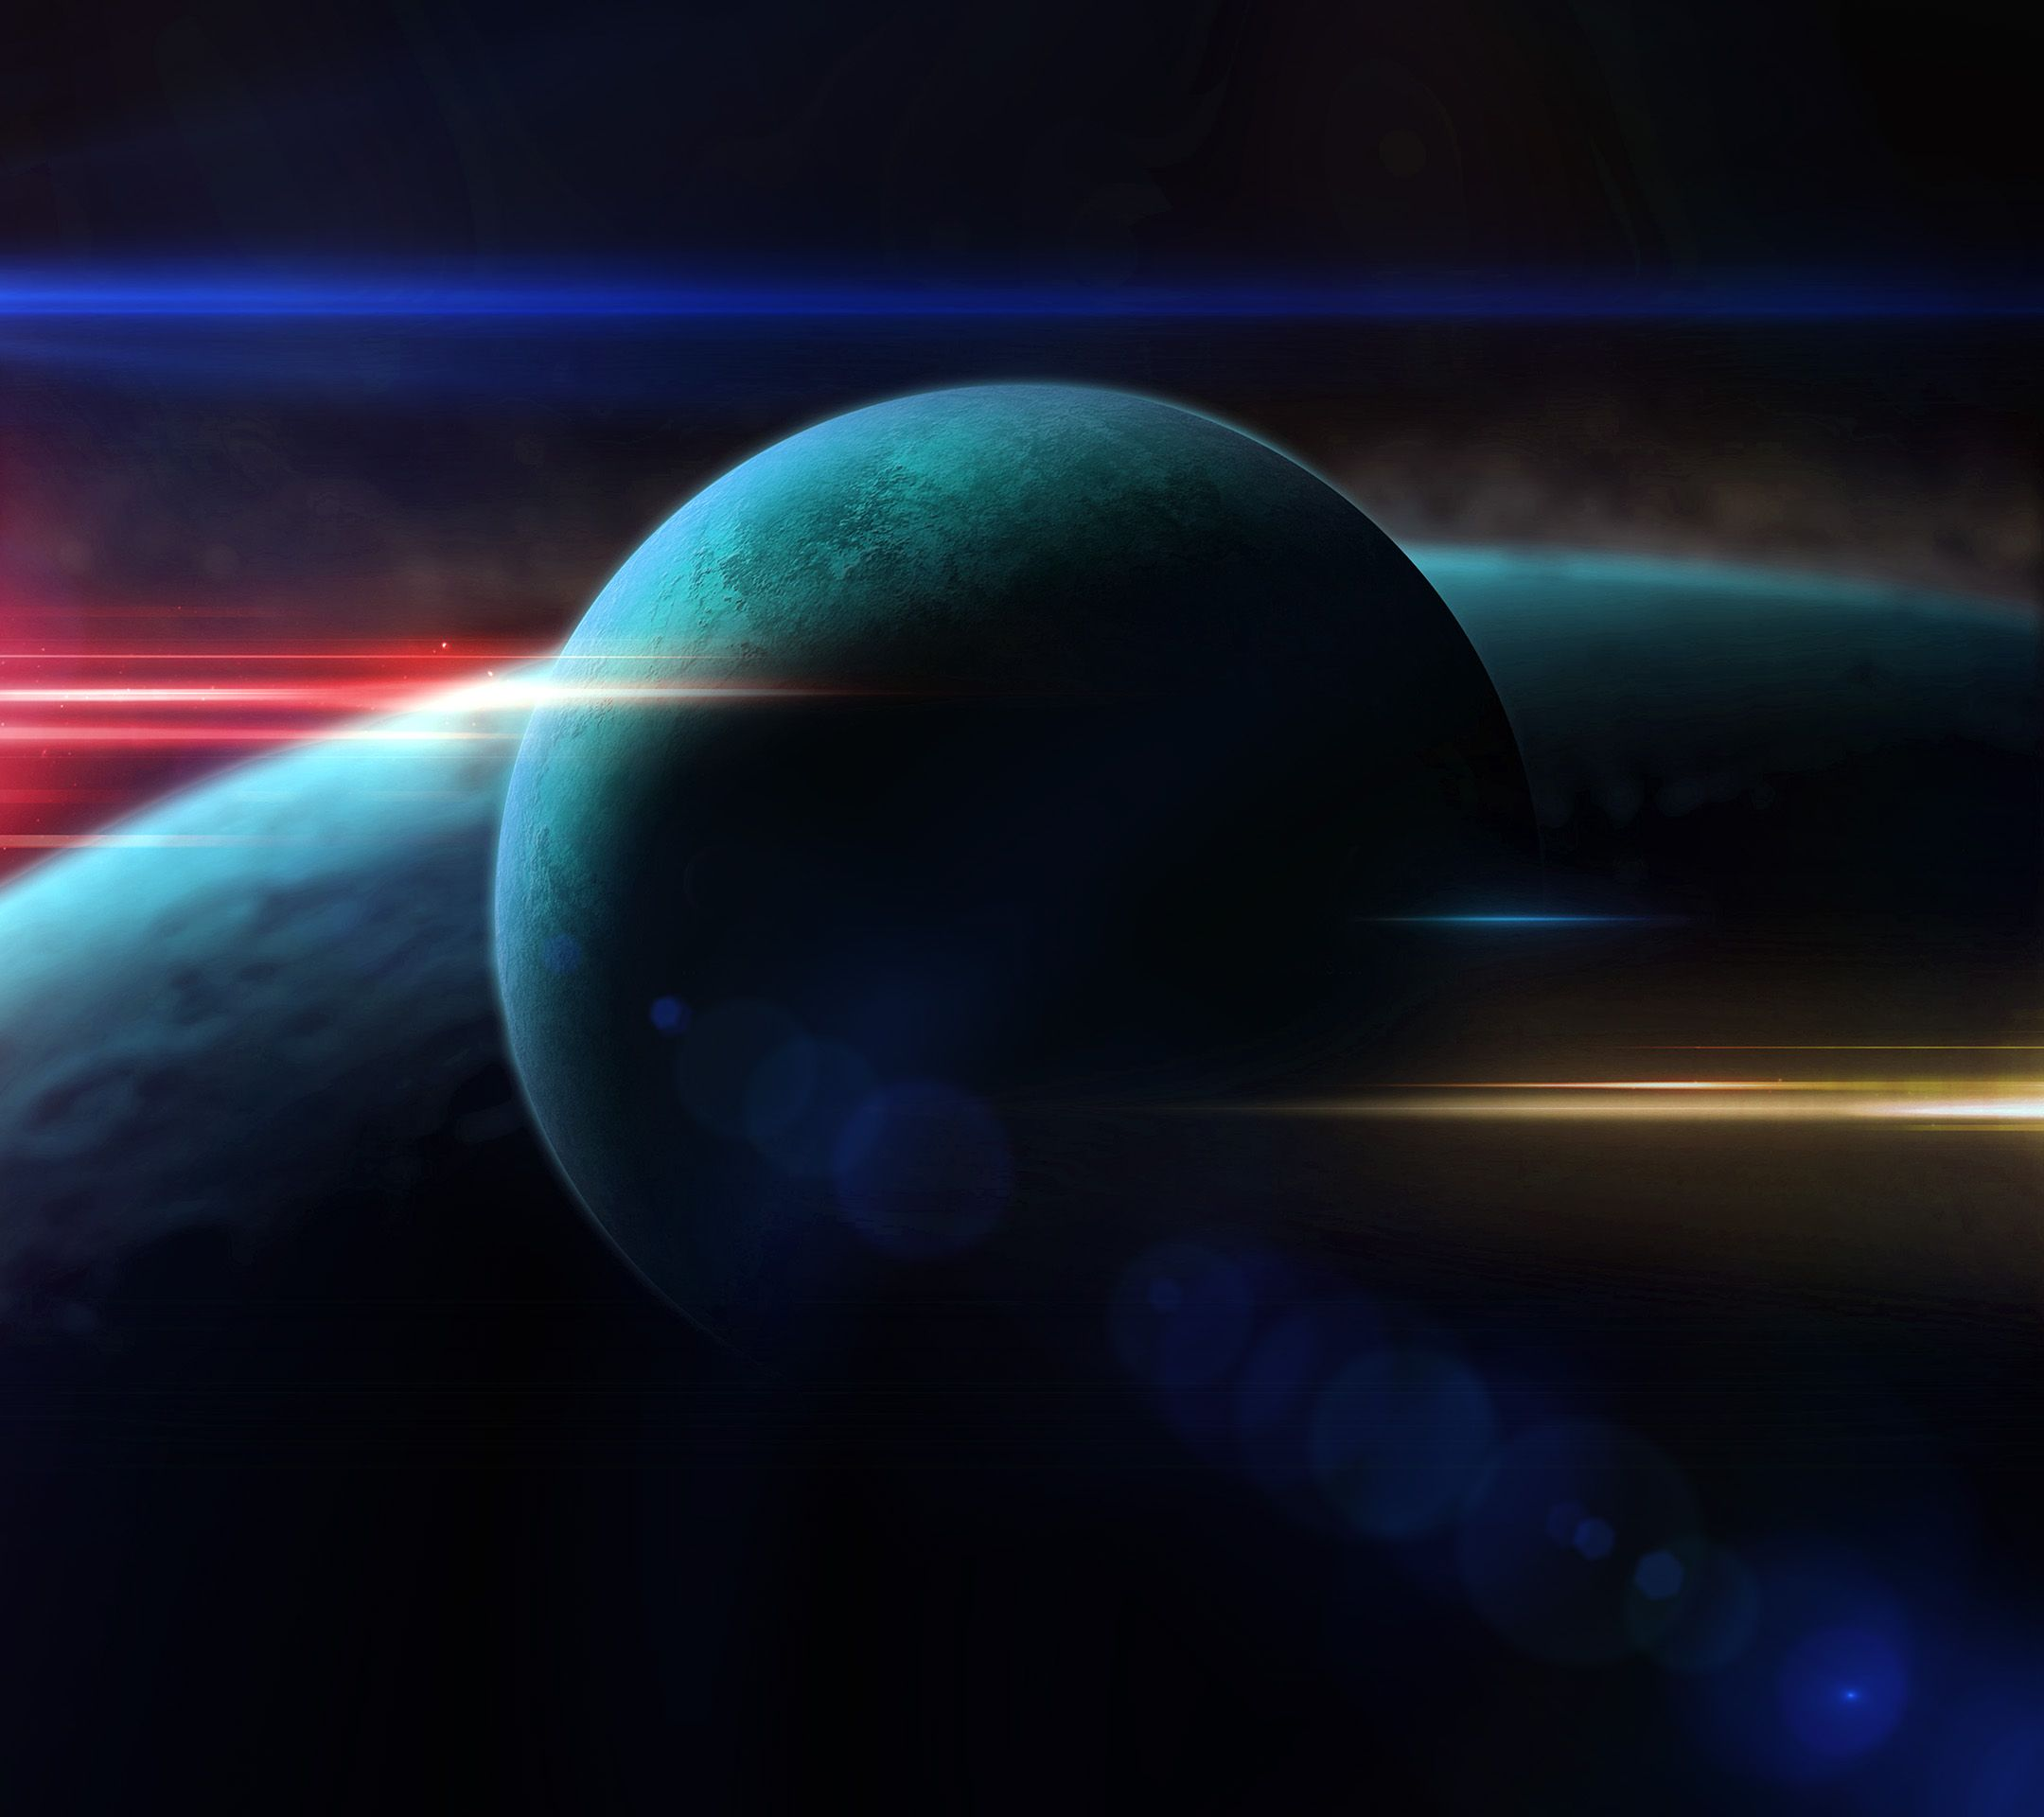 http://bit.ly/1IhNHXc - AndroidPapers.co wallpapers - ag64-universe-nasa-space-planet-art - Android, wallpaper